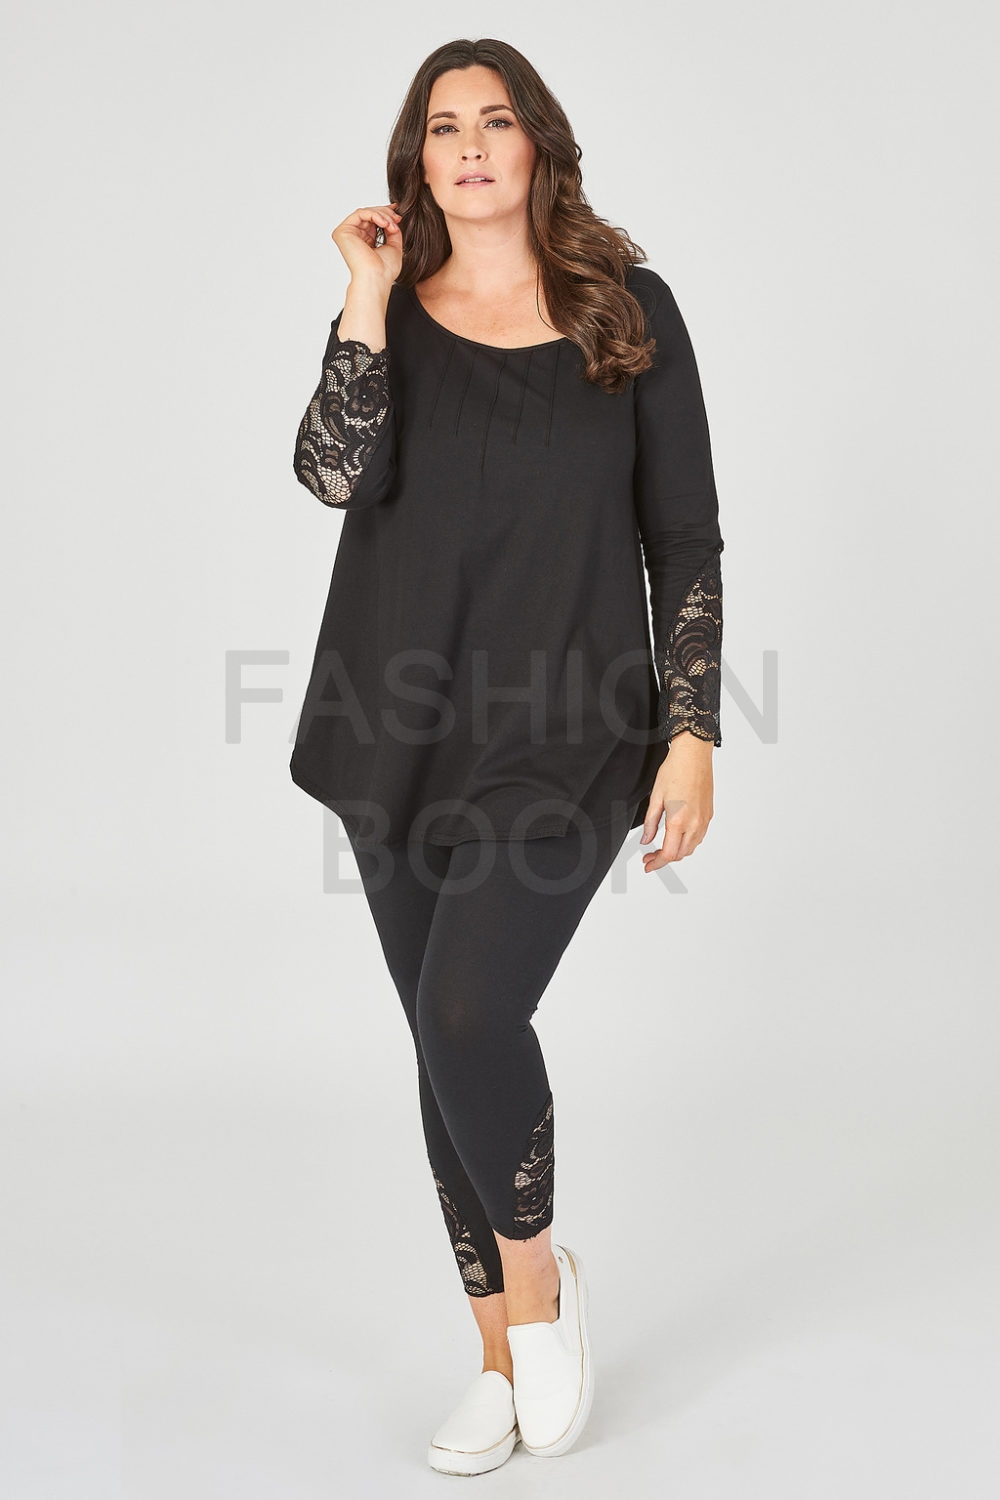 Fashionbook wholesale plus size lace cuff top